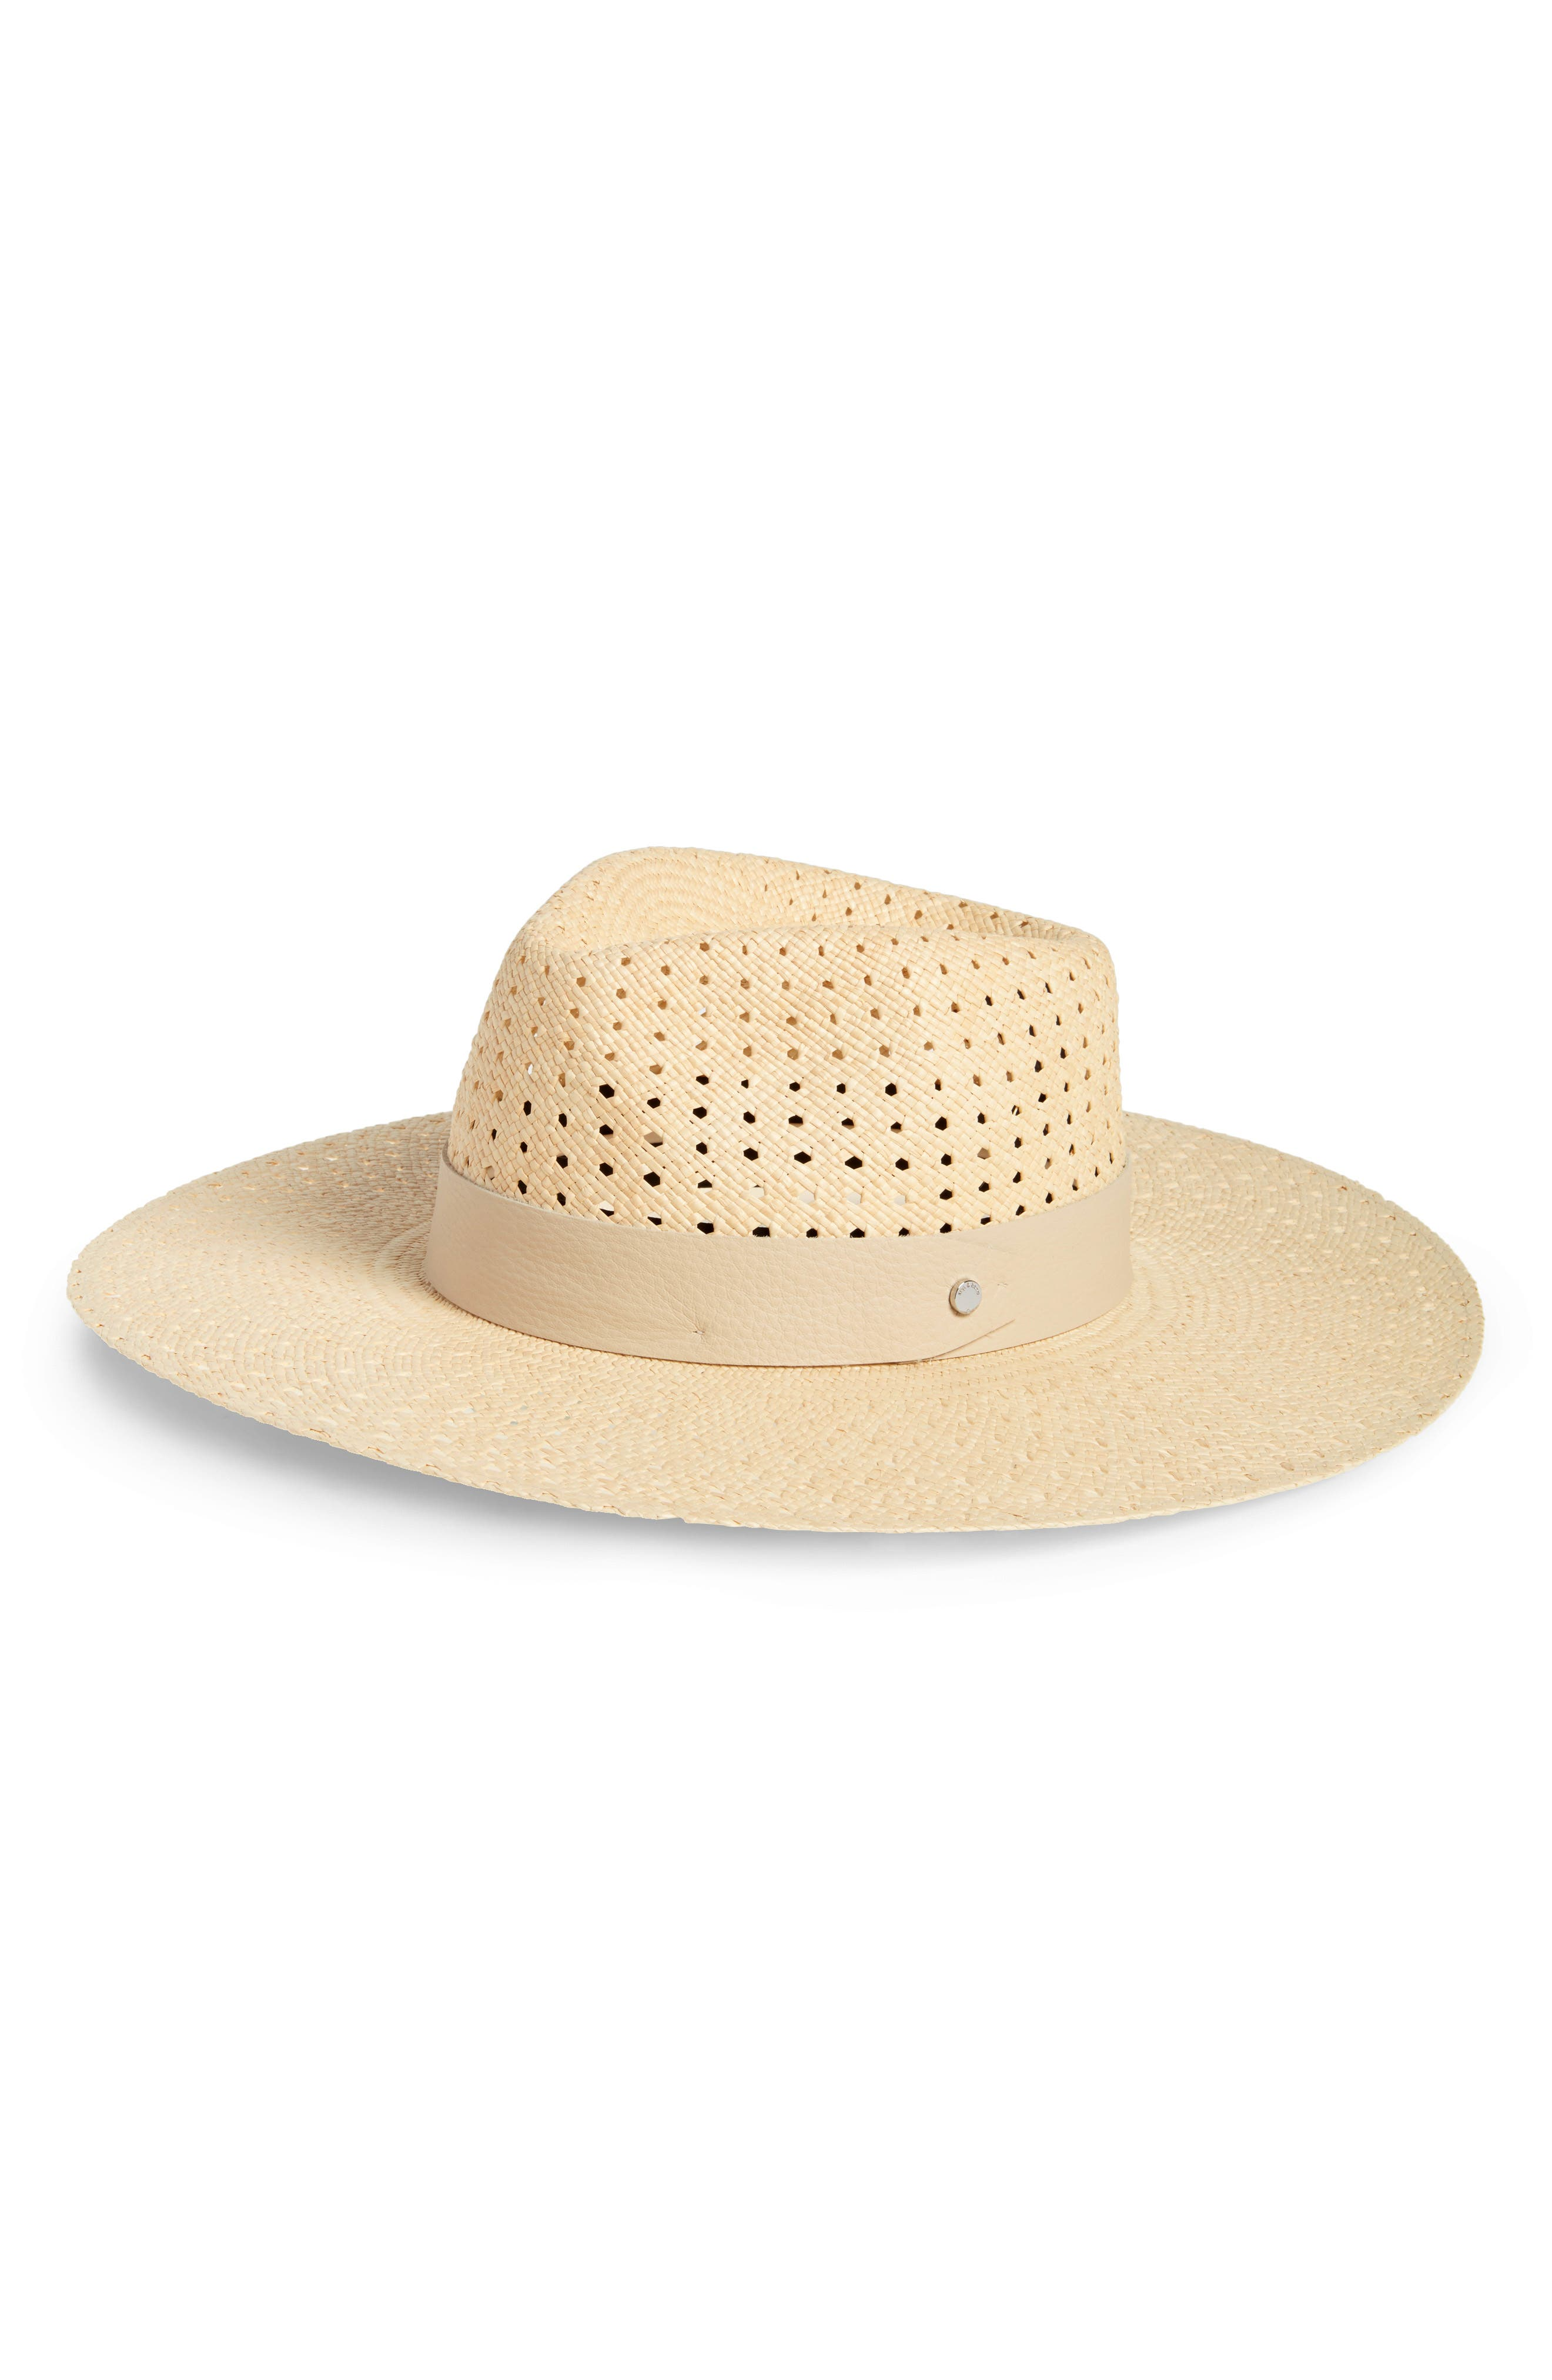 Lacey Wide Brim Panama Hat,                             Main thumbnail 1, color,